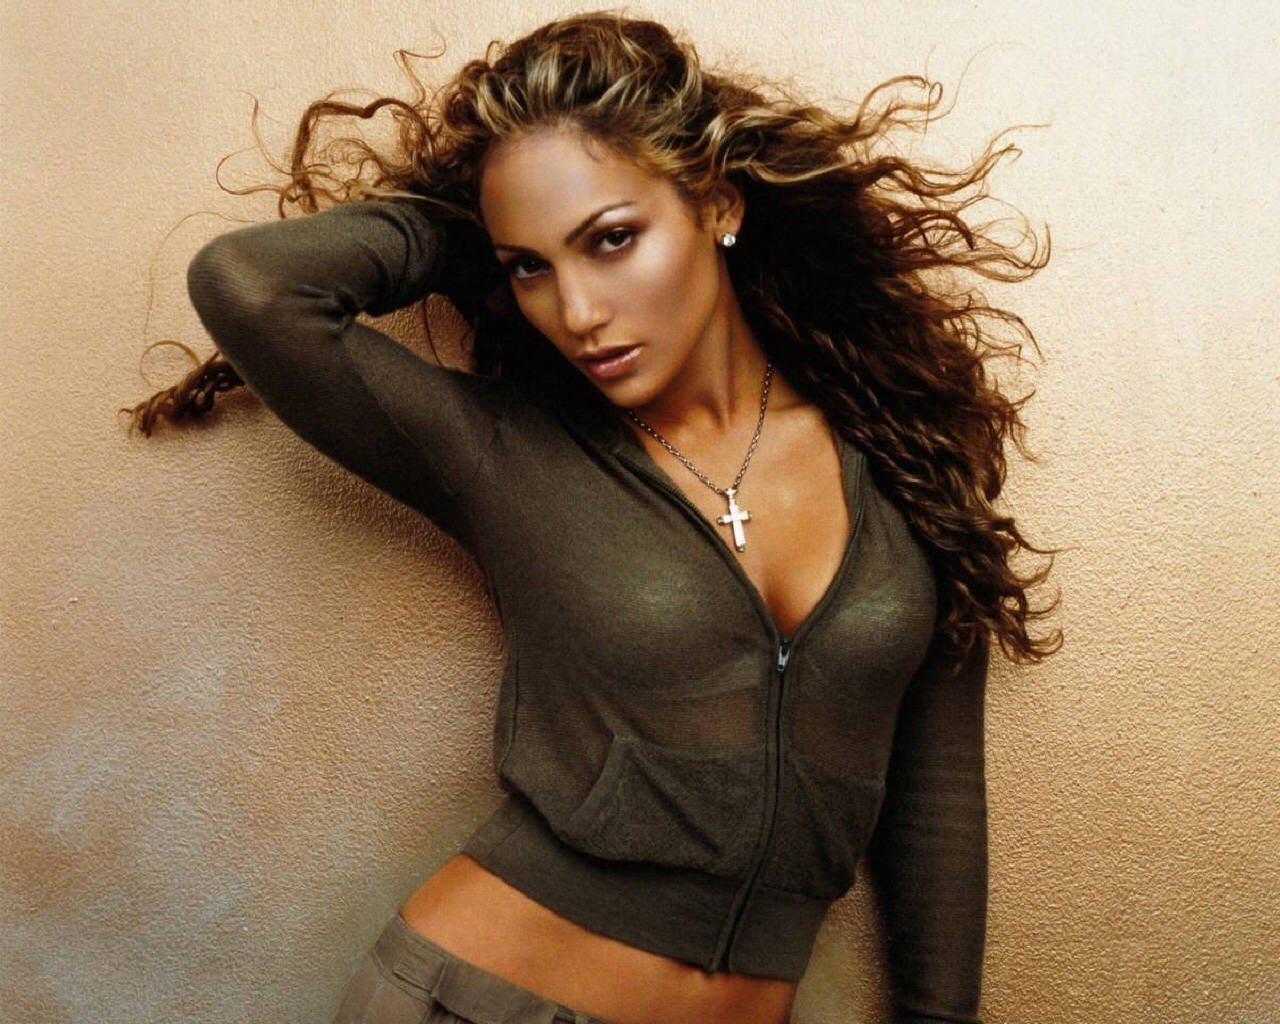 Jennifer Lopez Images, Videos and Sexy